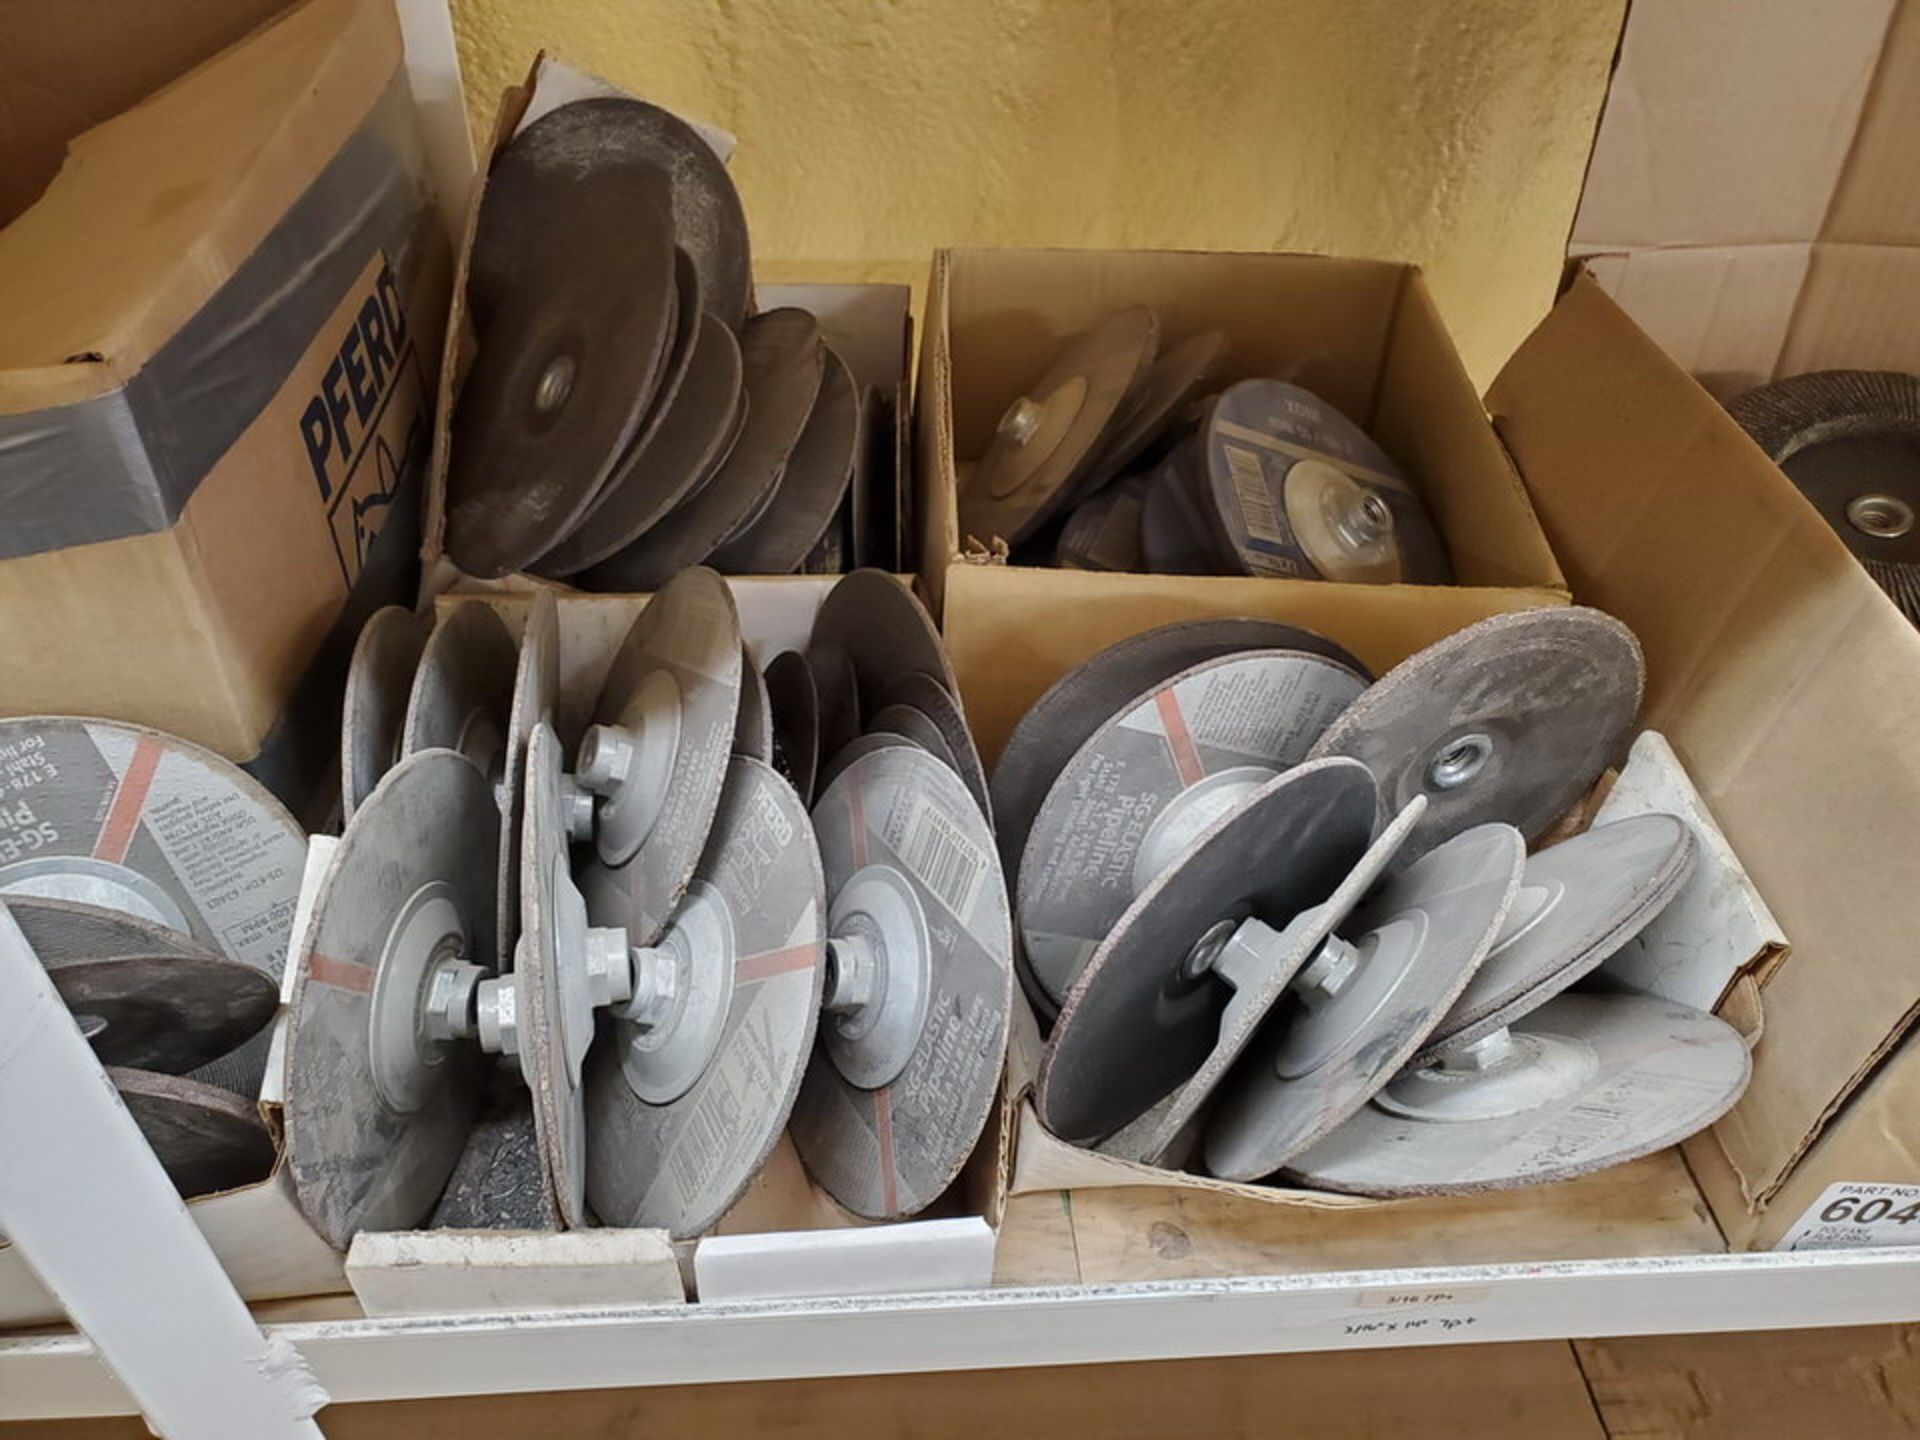 Radnor, LE Welding Accessories To Include But Not Limitied To: Grinding, Cutting & Flap Discs, - Image 23 of 24